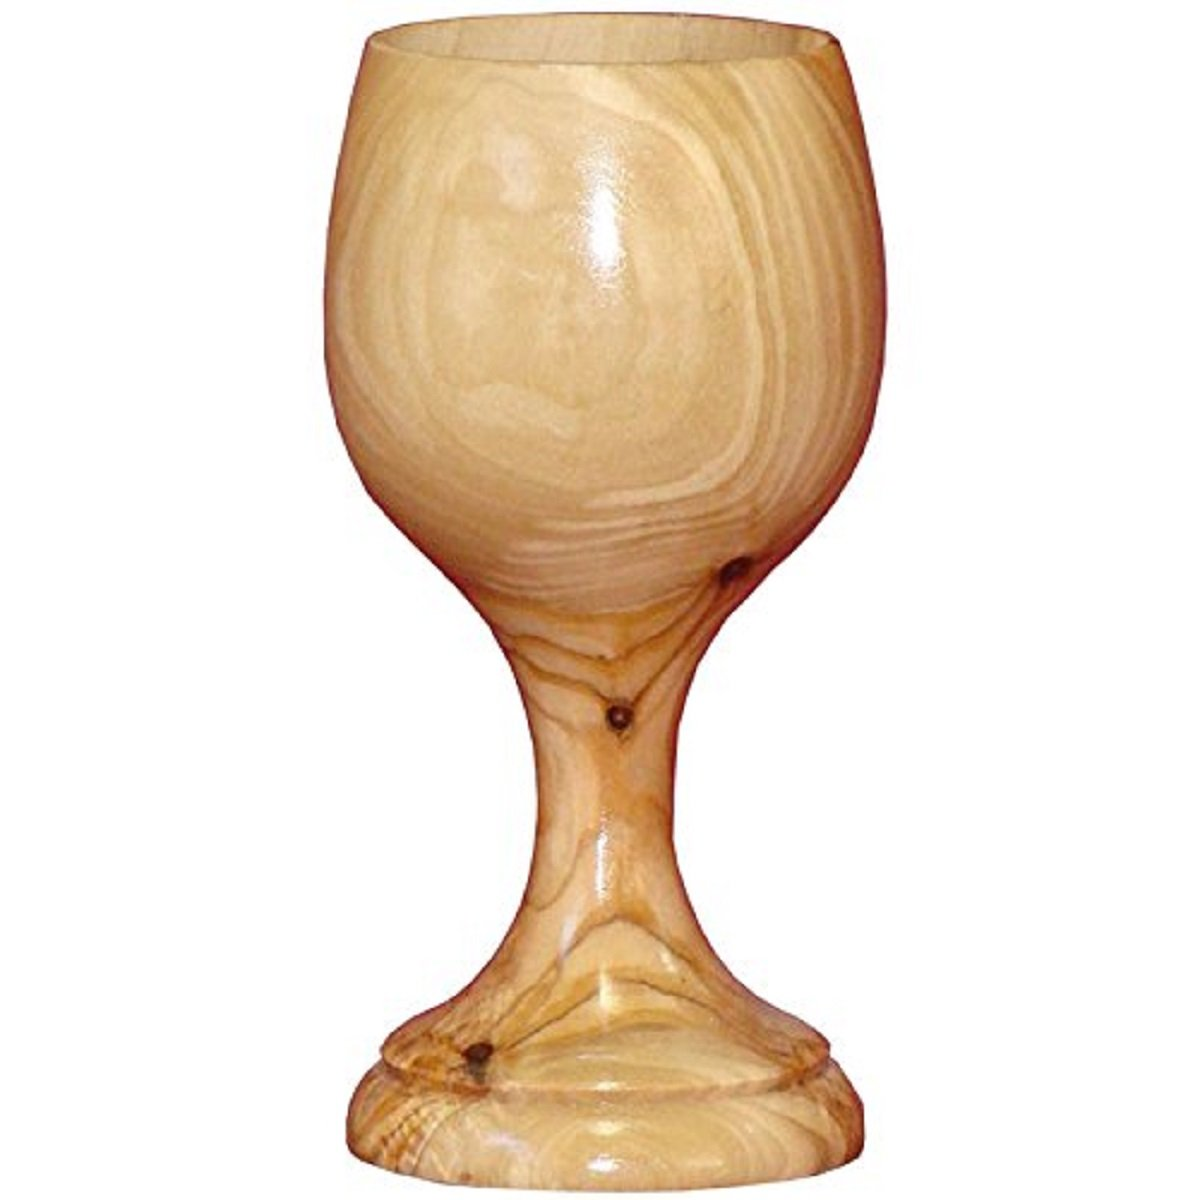 Large Communion Wine Goblet - Chalice Olive Wood (6 Inches Large) by Bethlehem Gifts TM